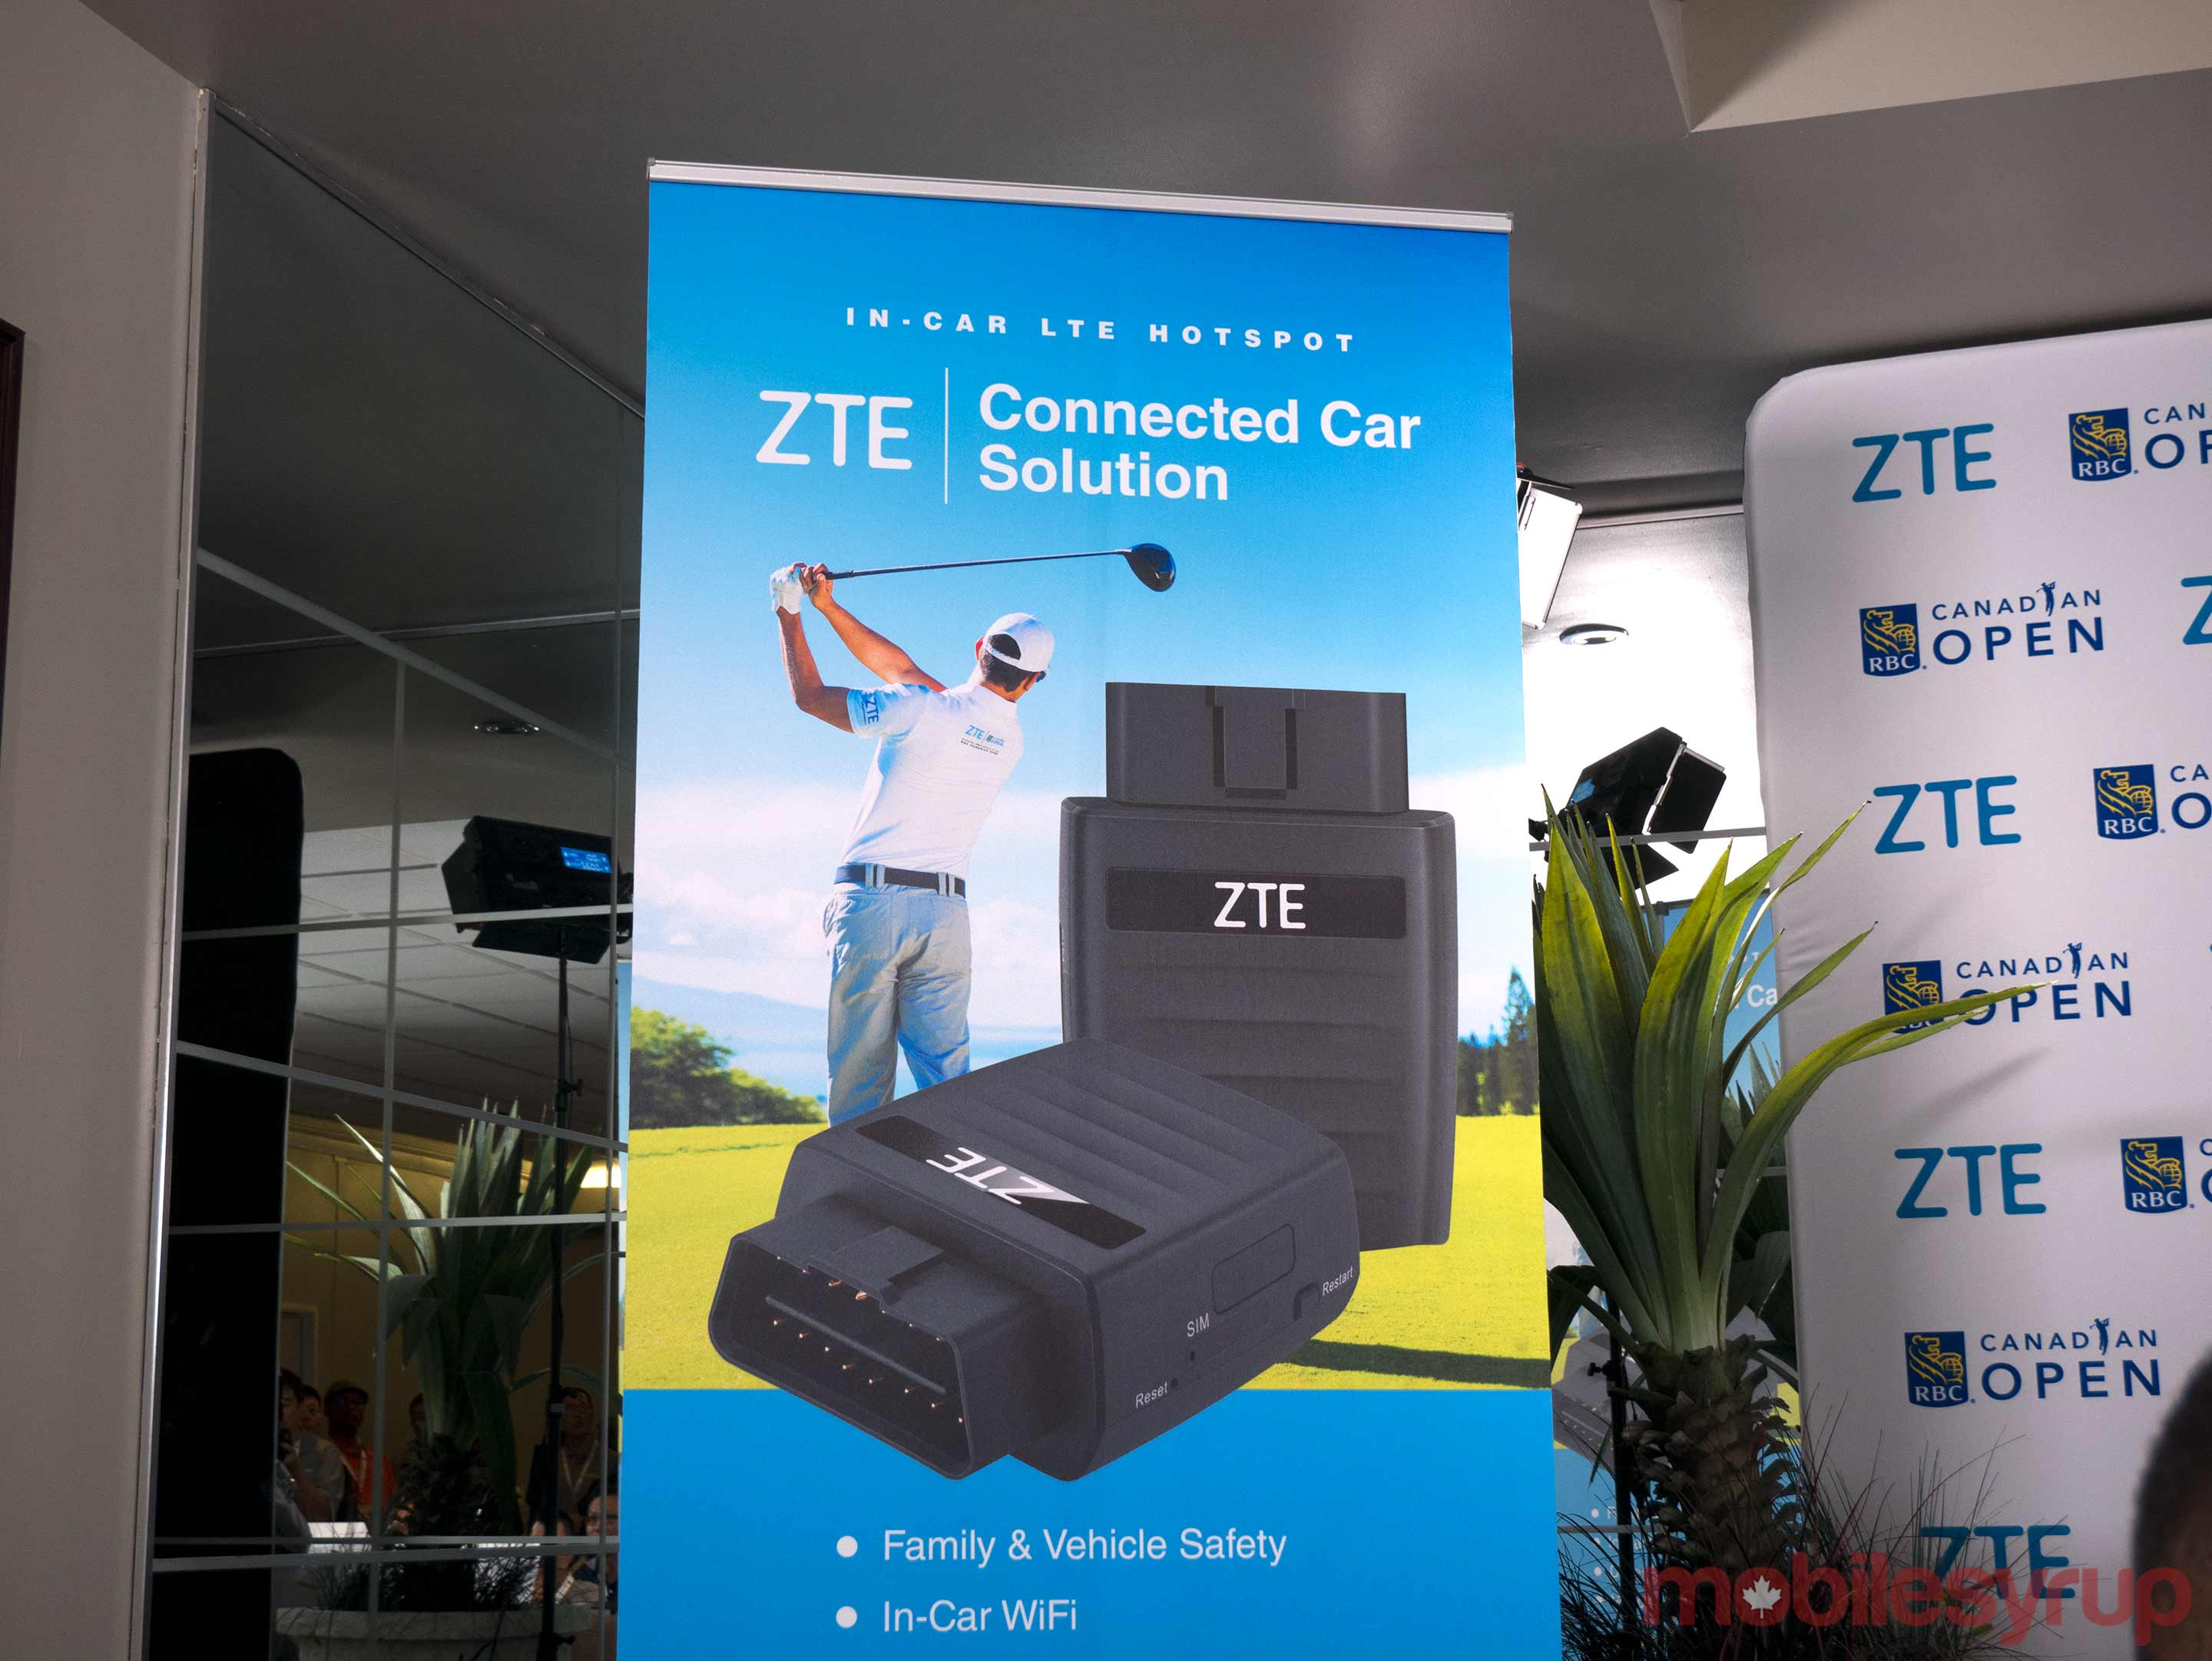 ZTE connected car